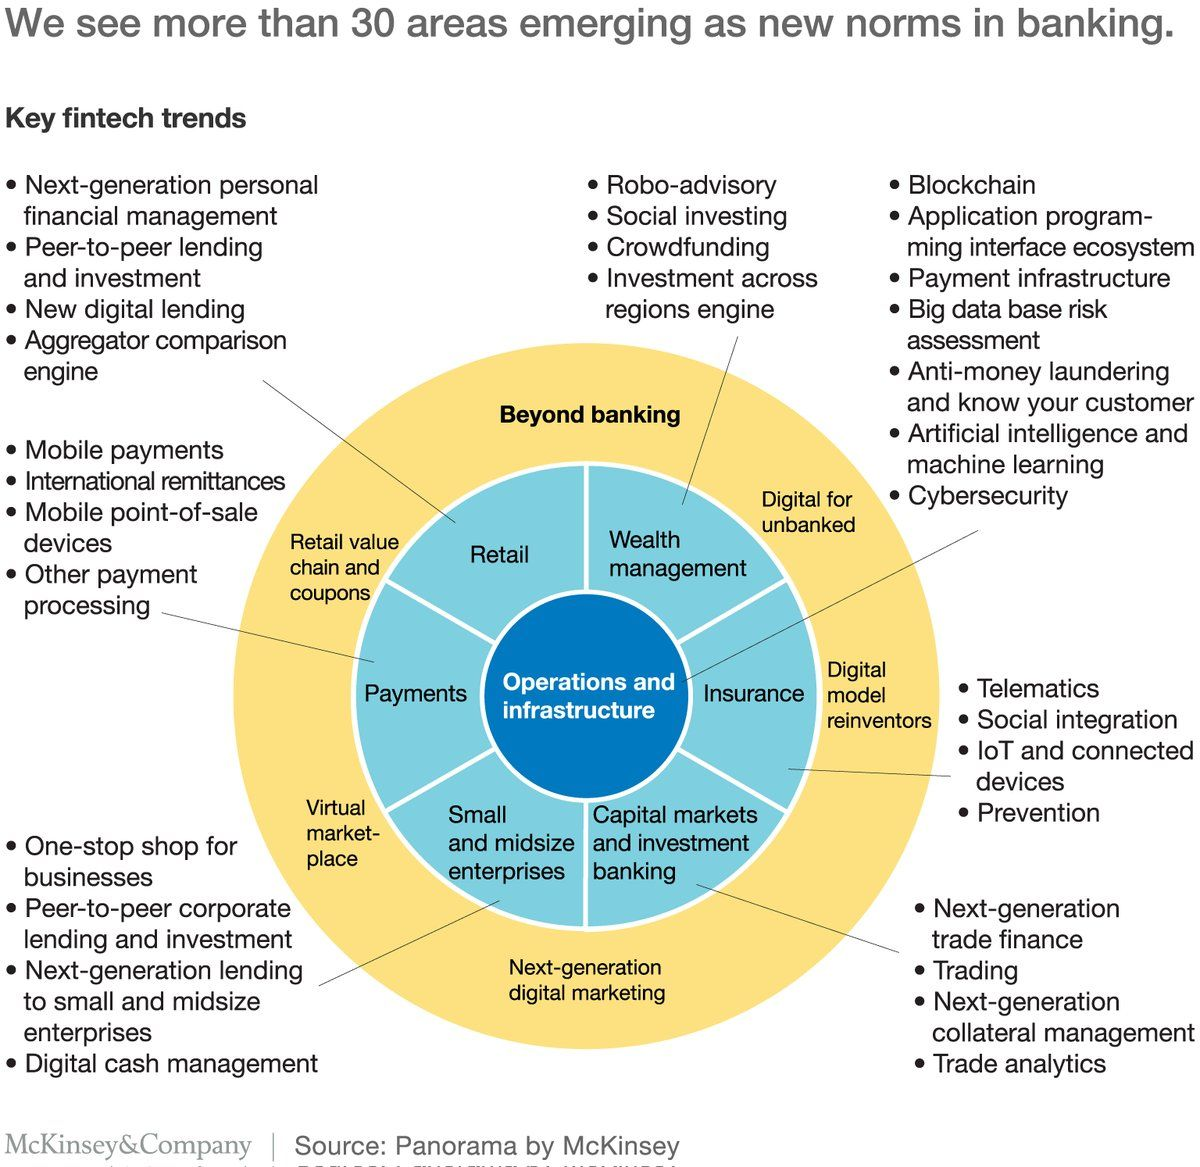 Bracing for seven critical changes as fintech matures by